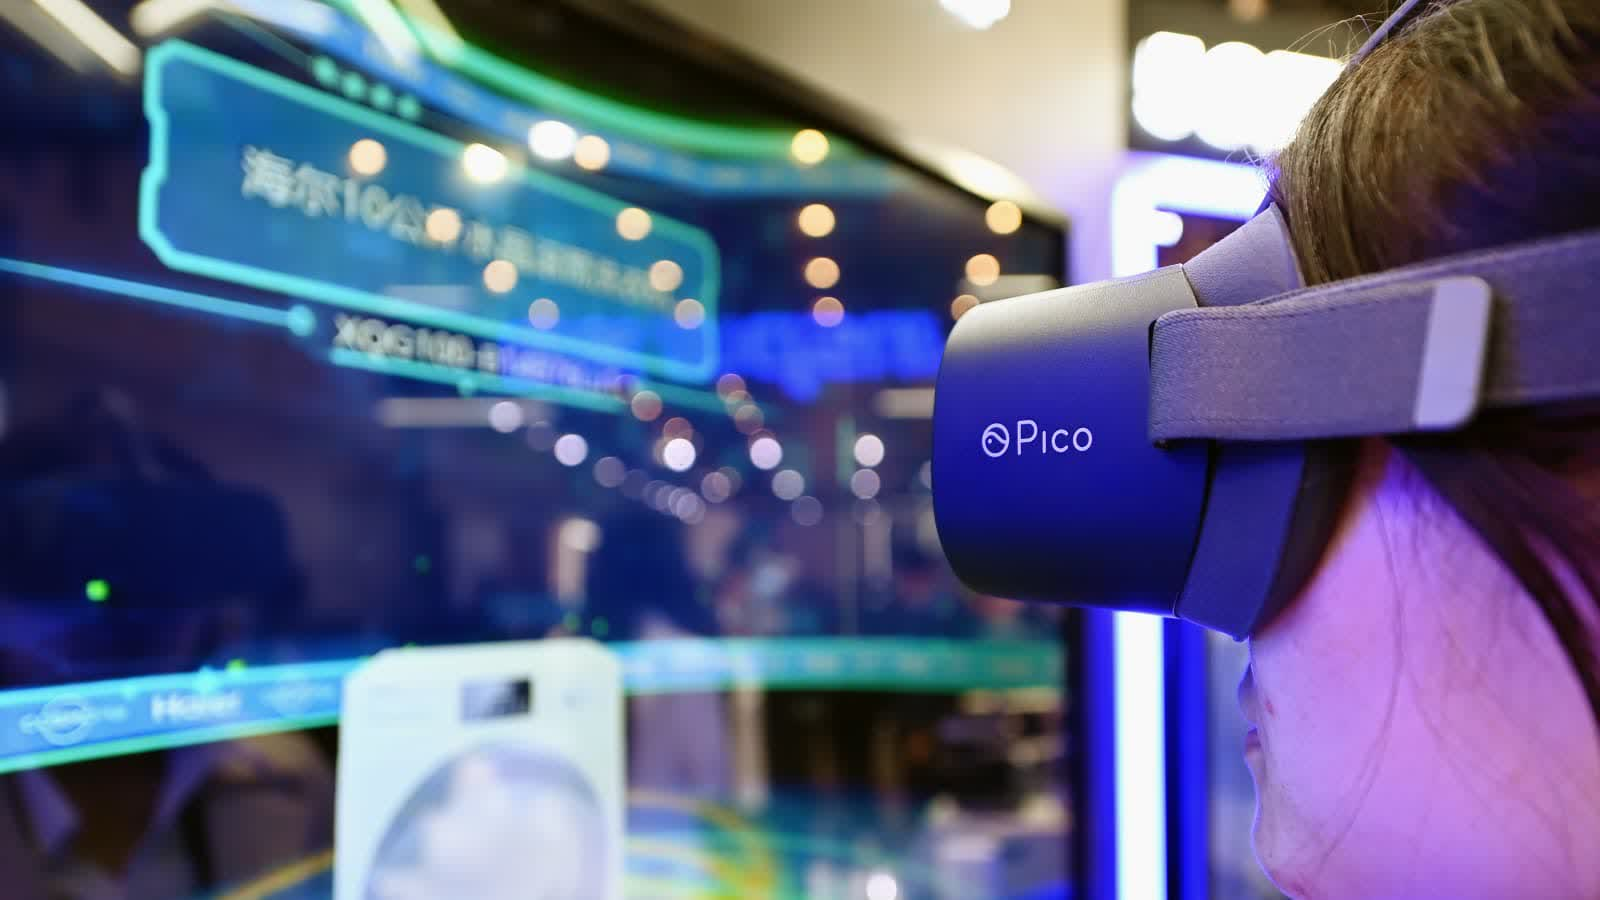 TikTok owner ByteDance delves into virtual reality with Pico acquisition